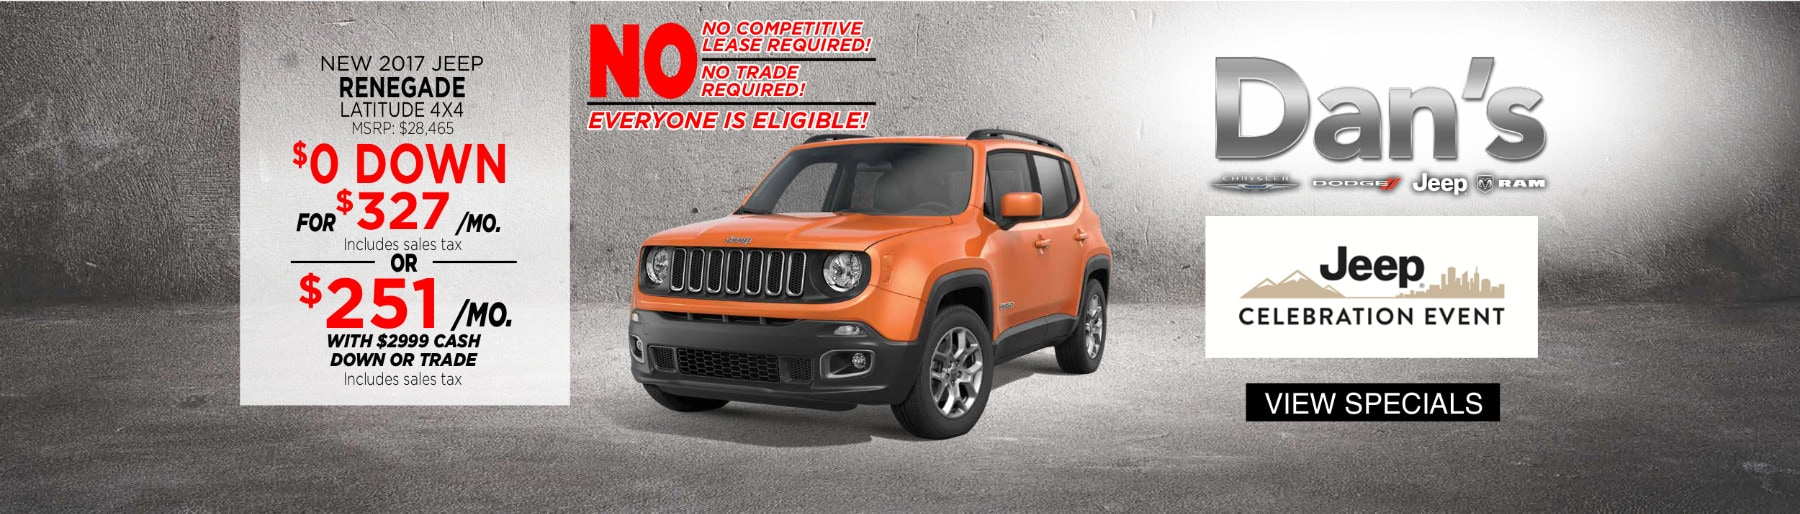 Jeep Renegade Latitude Special Deal in Westborough, MA